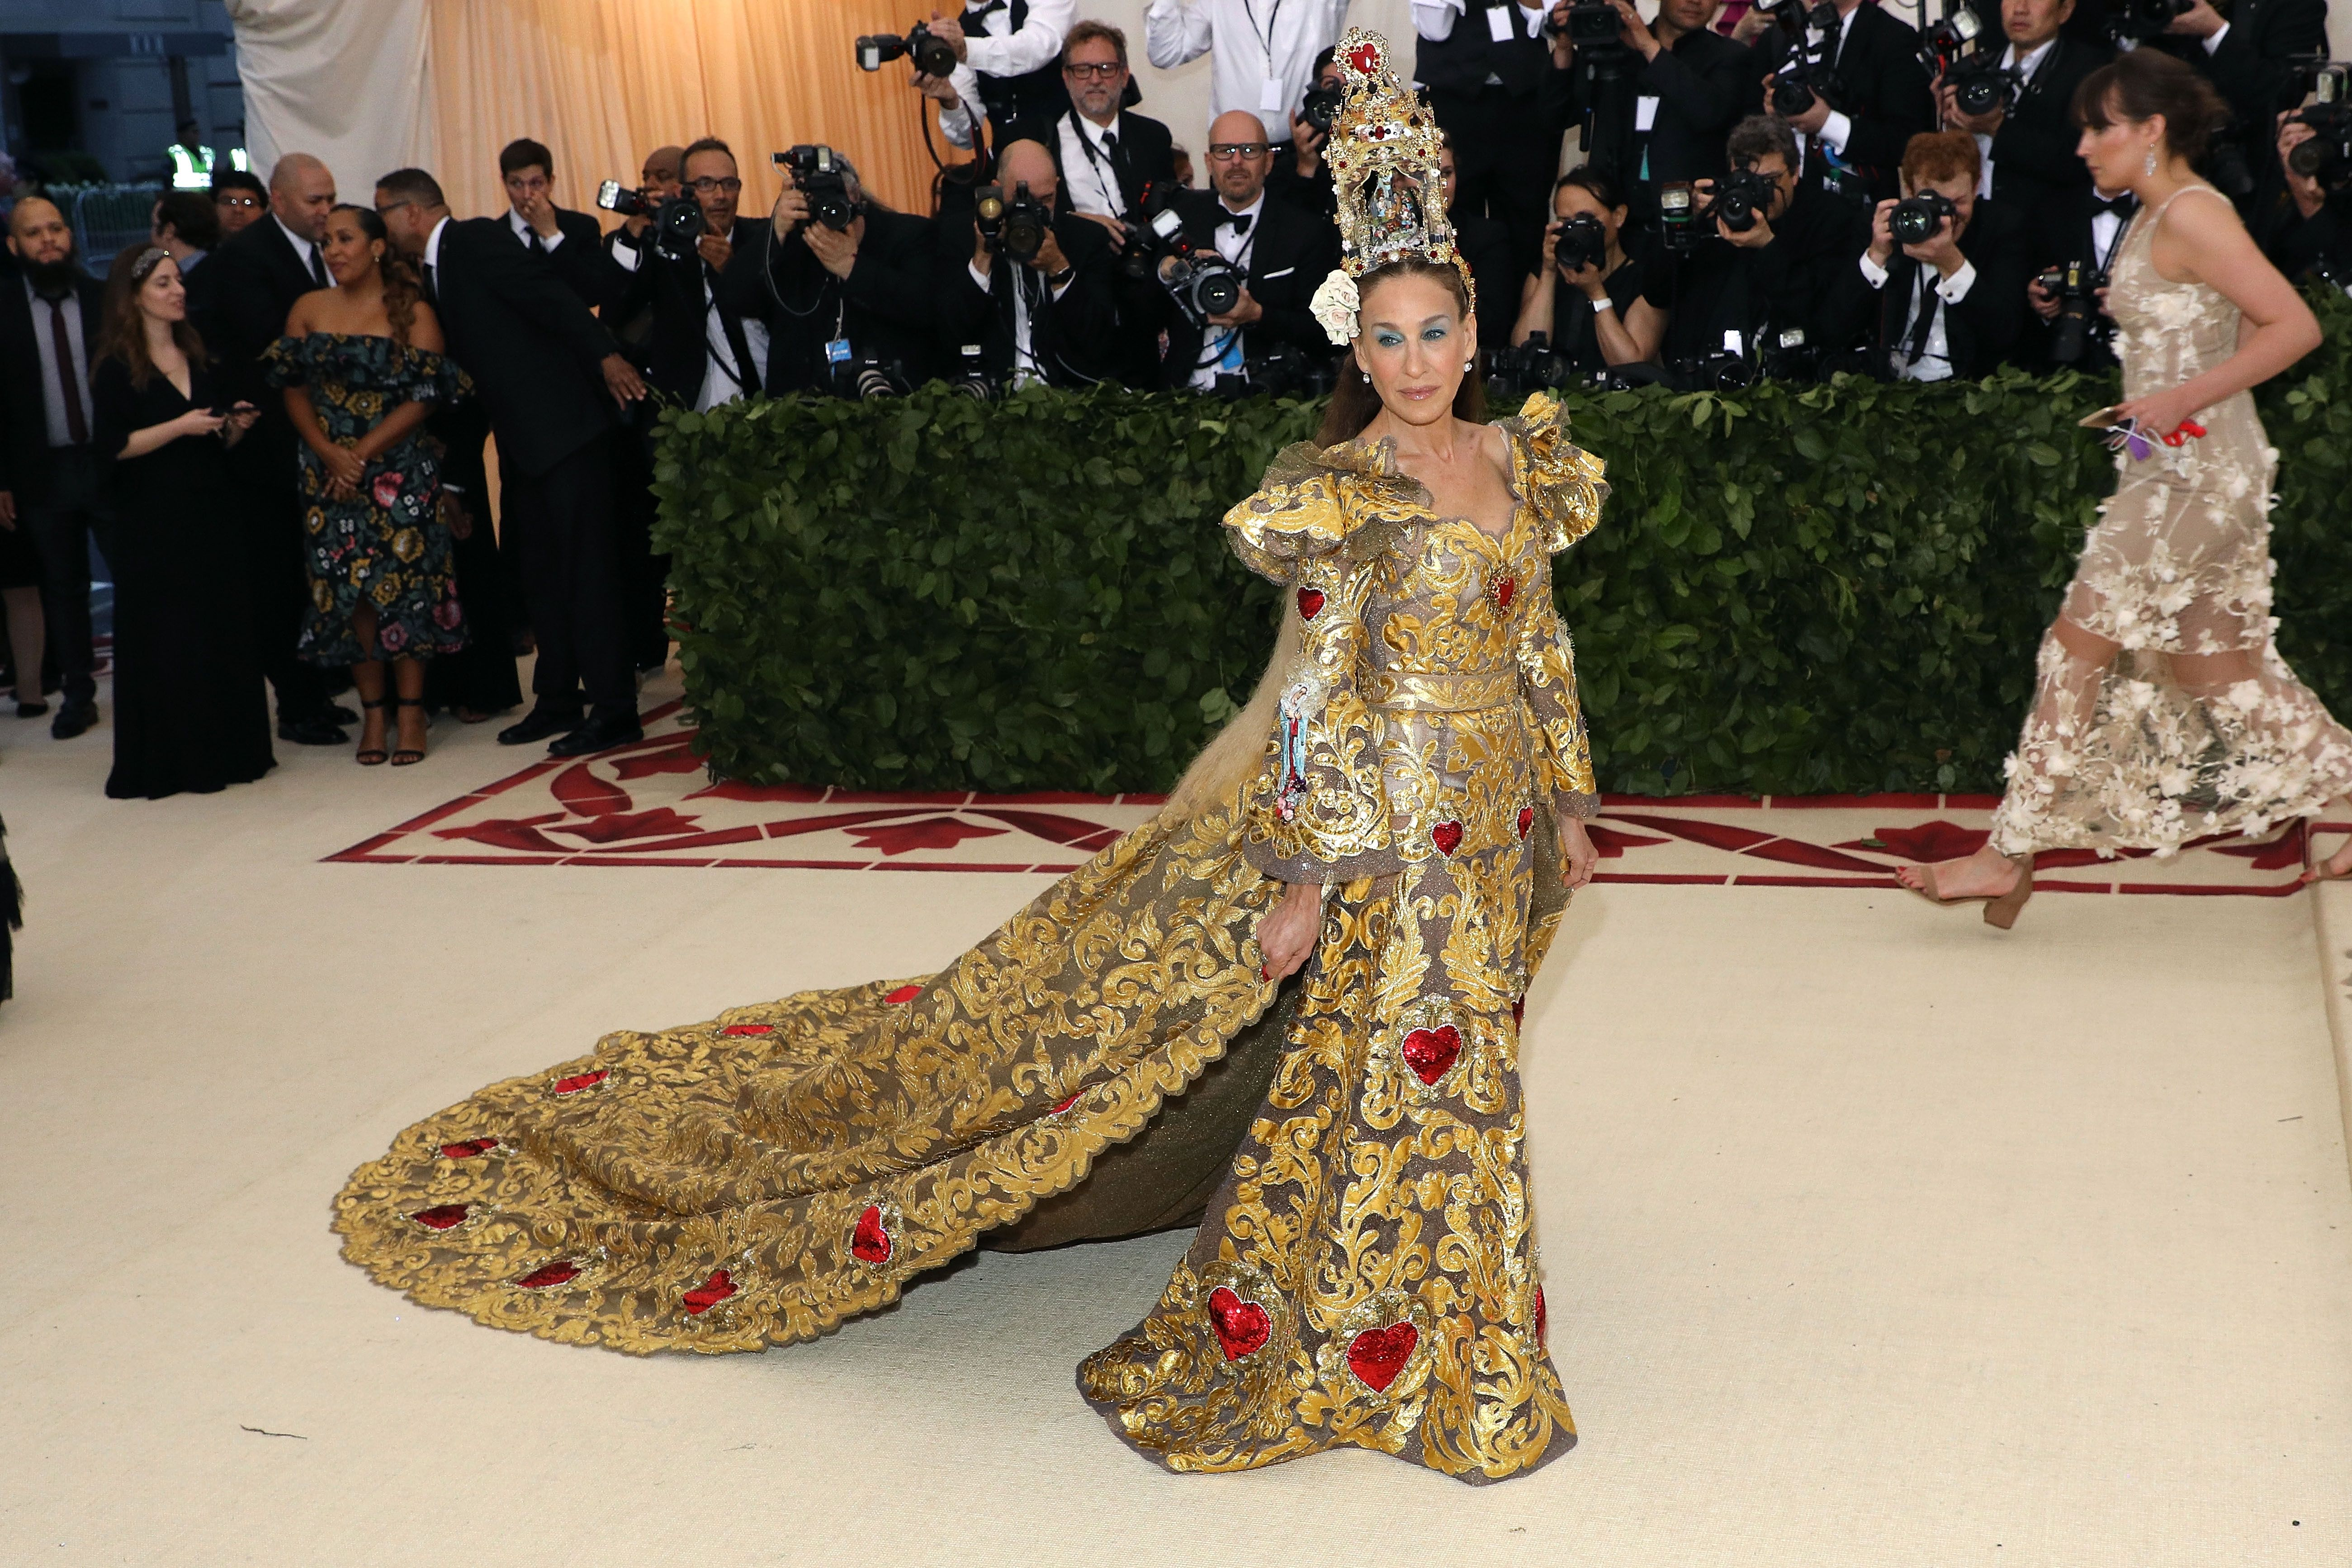 Watch The Ultimate Met Gala Guessing Game: Whos Wearing a Wig video